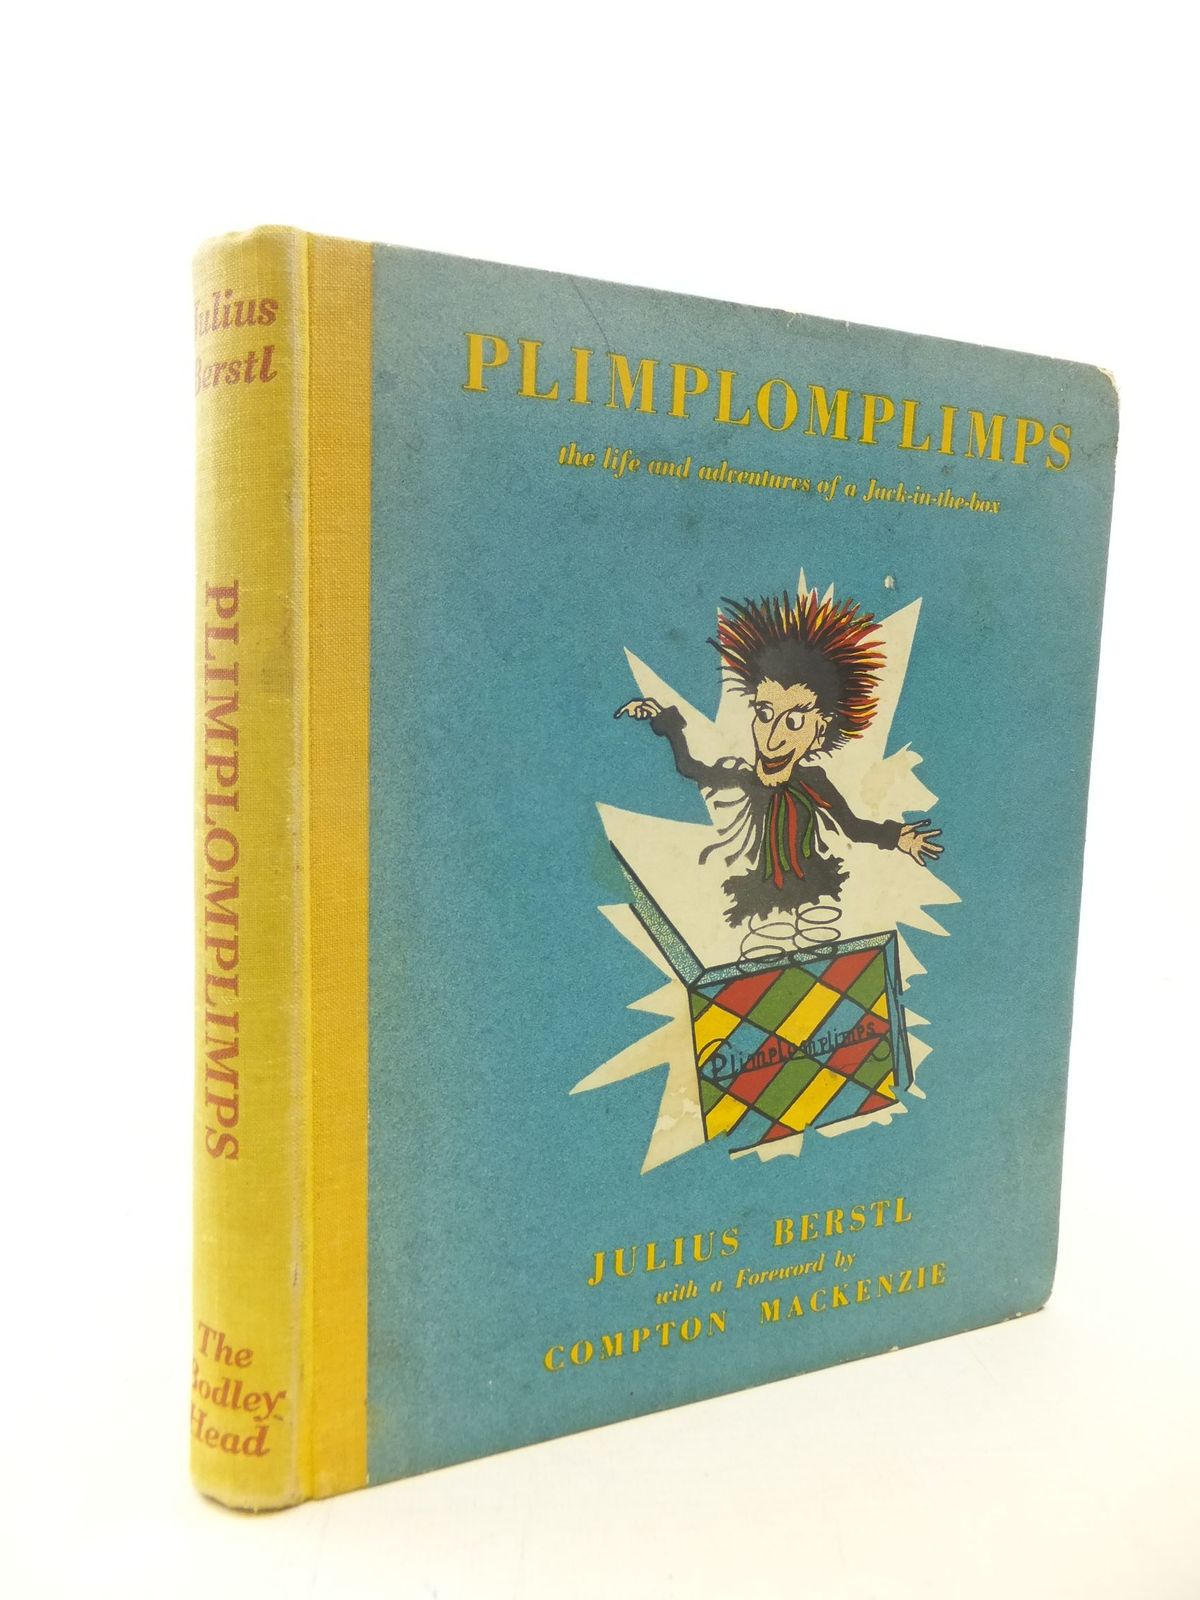 Photo of PLIMPLOMPLIMPS THE LIFE AND ADVENTURES OF JACK-IN-THE-BOX written by Berstl, Julius<br />Mackenzie, Compton illustrated by Hofheinz, Wilgart published by The Bodley Head (STOCK CODE: 1711471)  for sale by Stella & Rose's Books